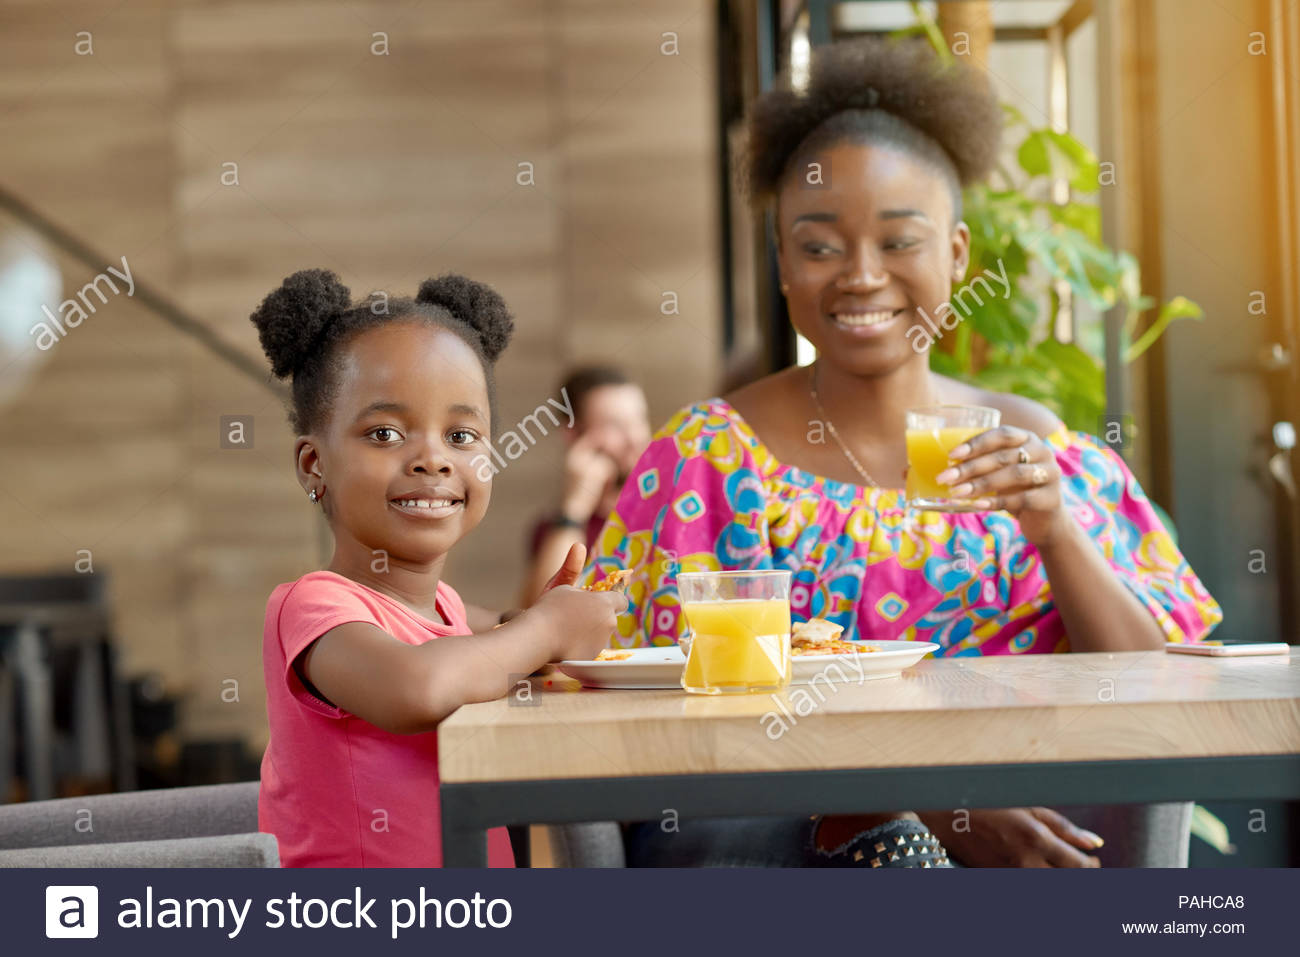 Happy smiling mother and daughter drinking orange juice, eating pizza. Having good mood, wonderful time together, lovely family. Other clients sitting in cafe's background. Loft interior. - Stock Image